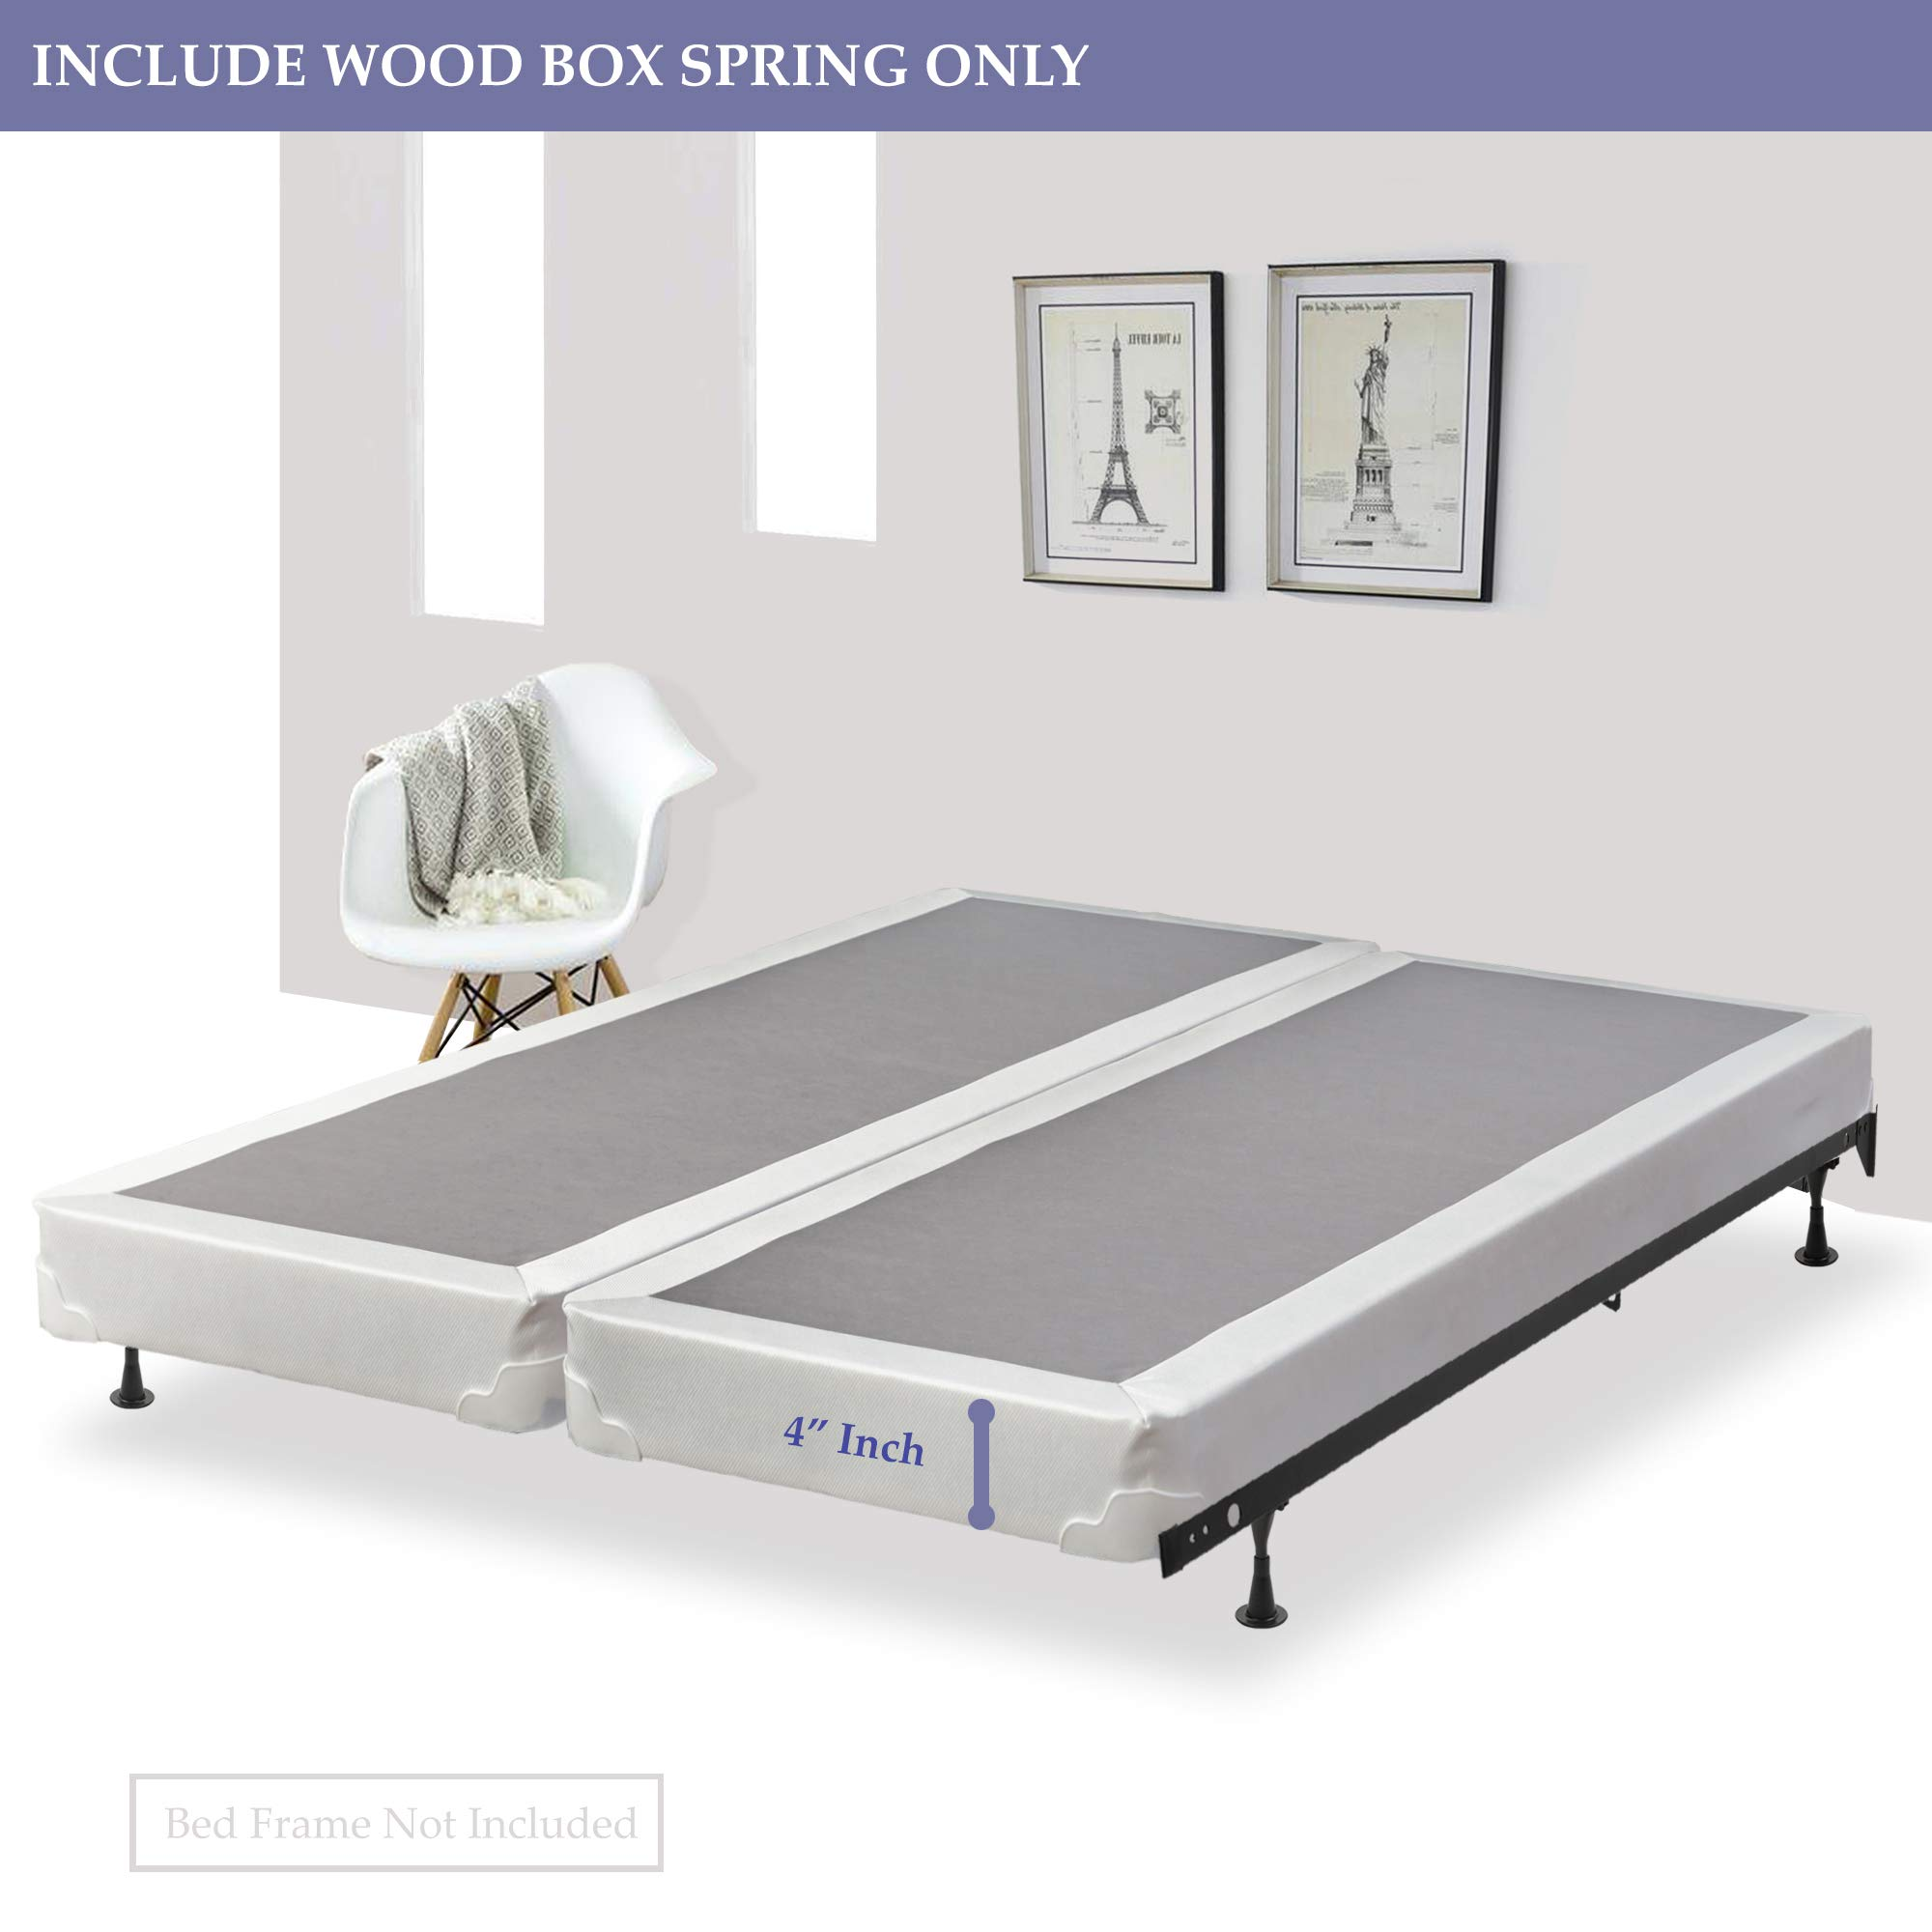 Spinal Solution, 4-inch Fully Assembled Split Box Spring/Foundation For Mattress, Queen Size by Spinal Solution